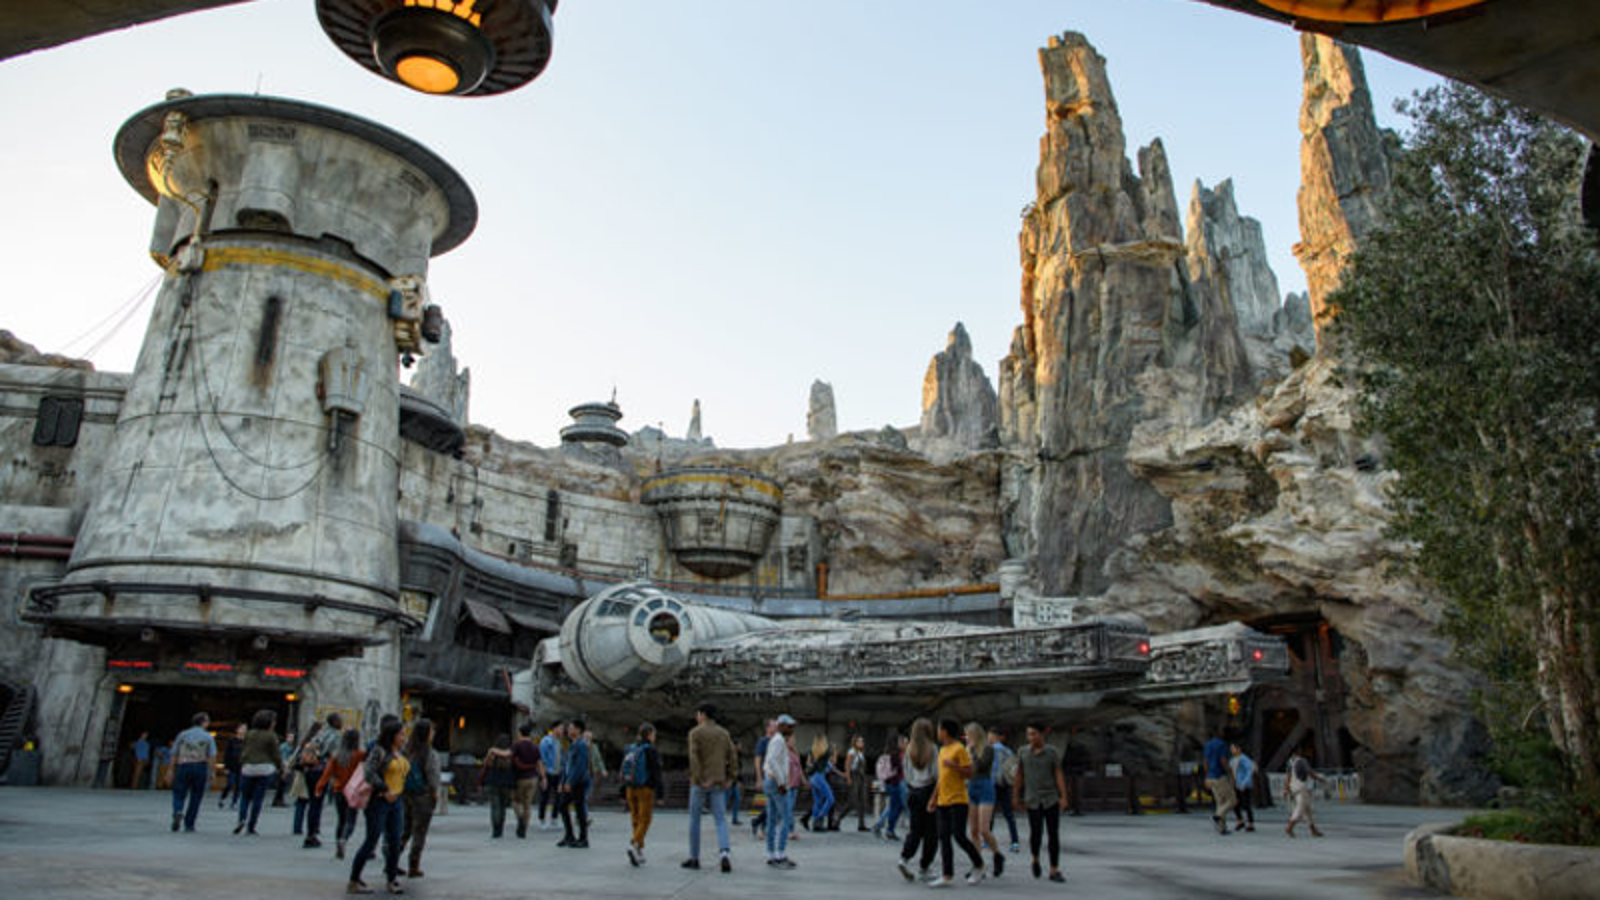 Wanting to Go to Star Wars: Galaxy's Edge Has Driven Me Insane